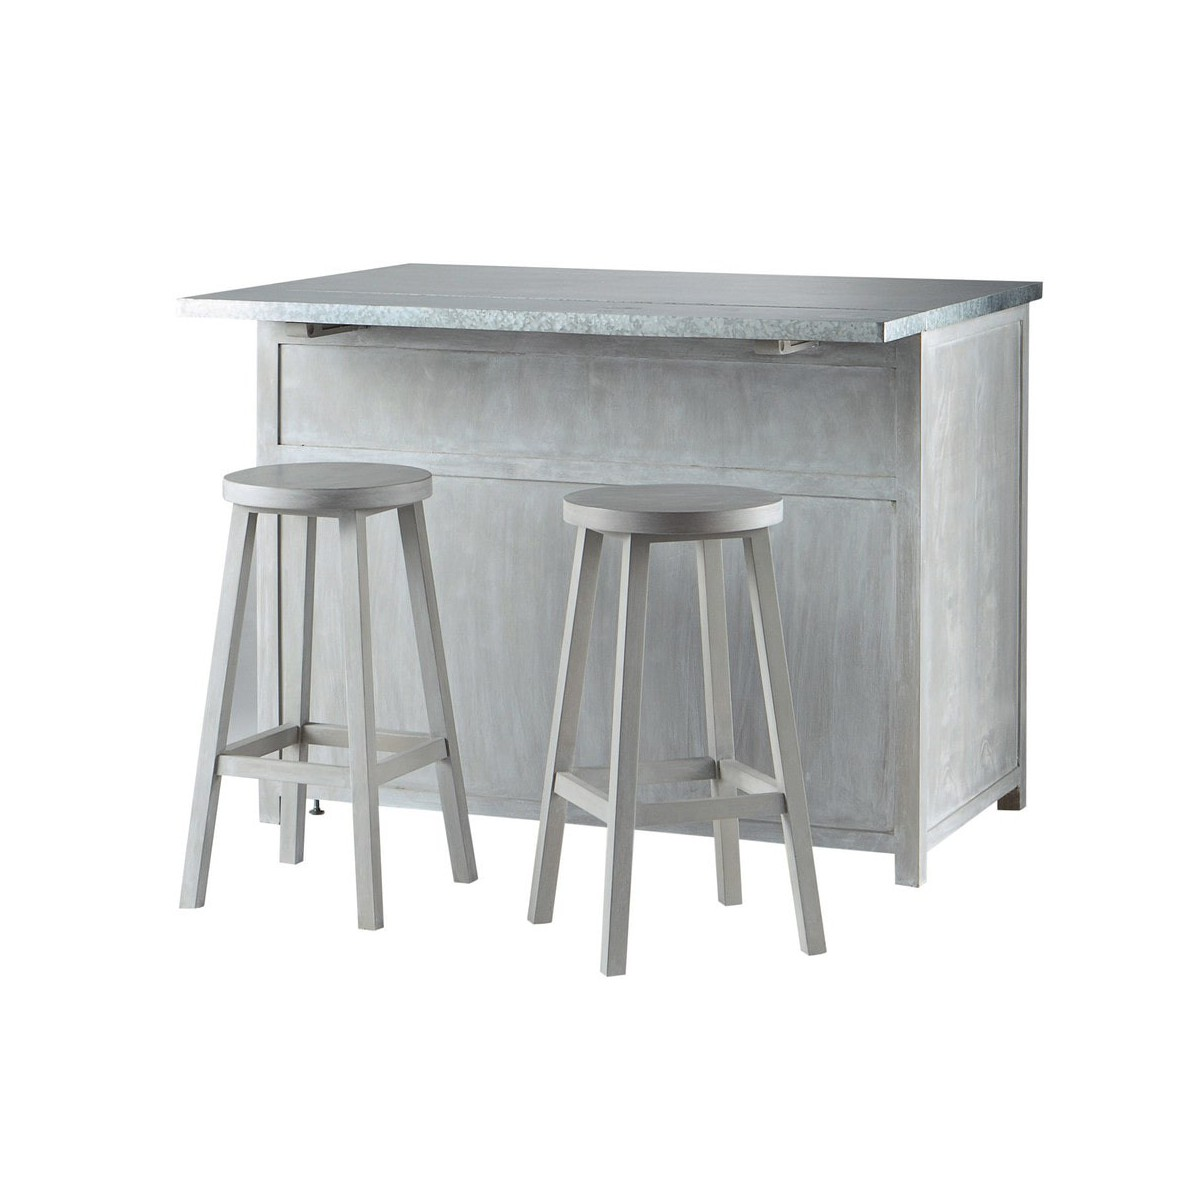 Tabourets De Bar Pauline Great Tabouret D Ilot Central With Tabouret D Ilot Central